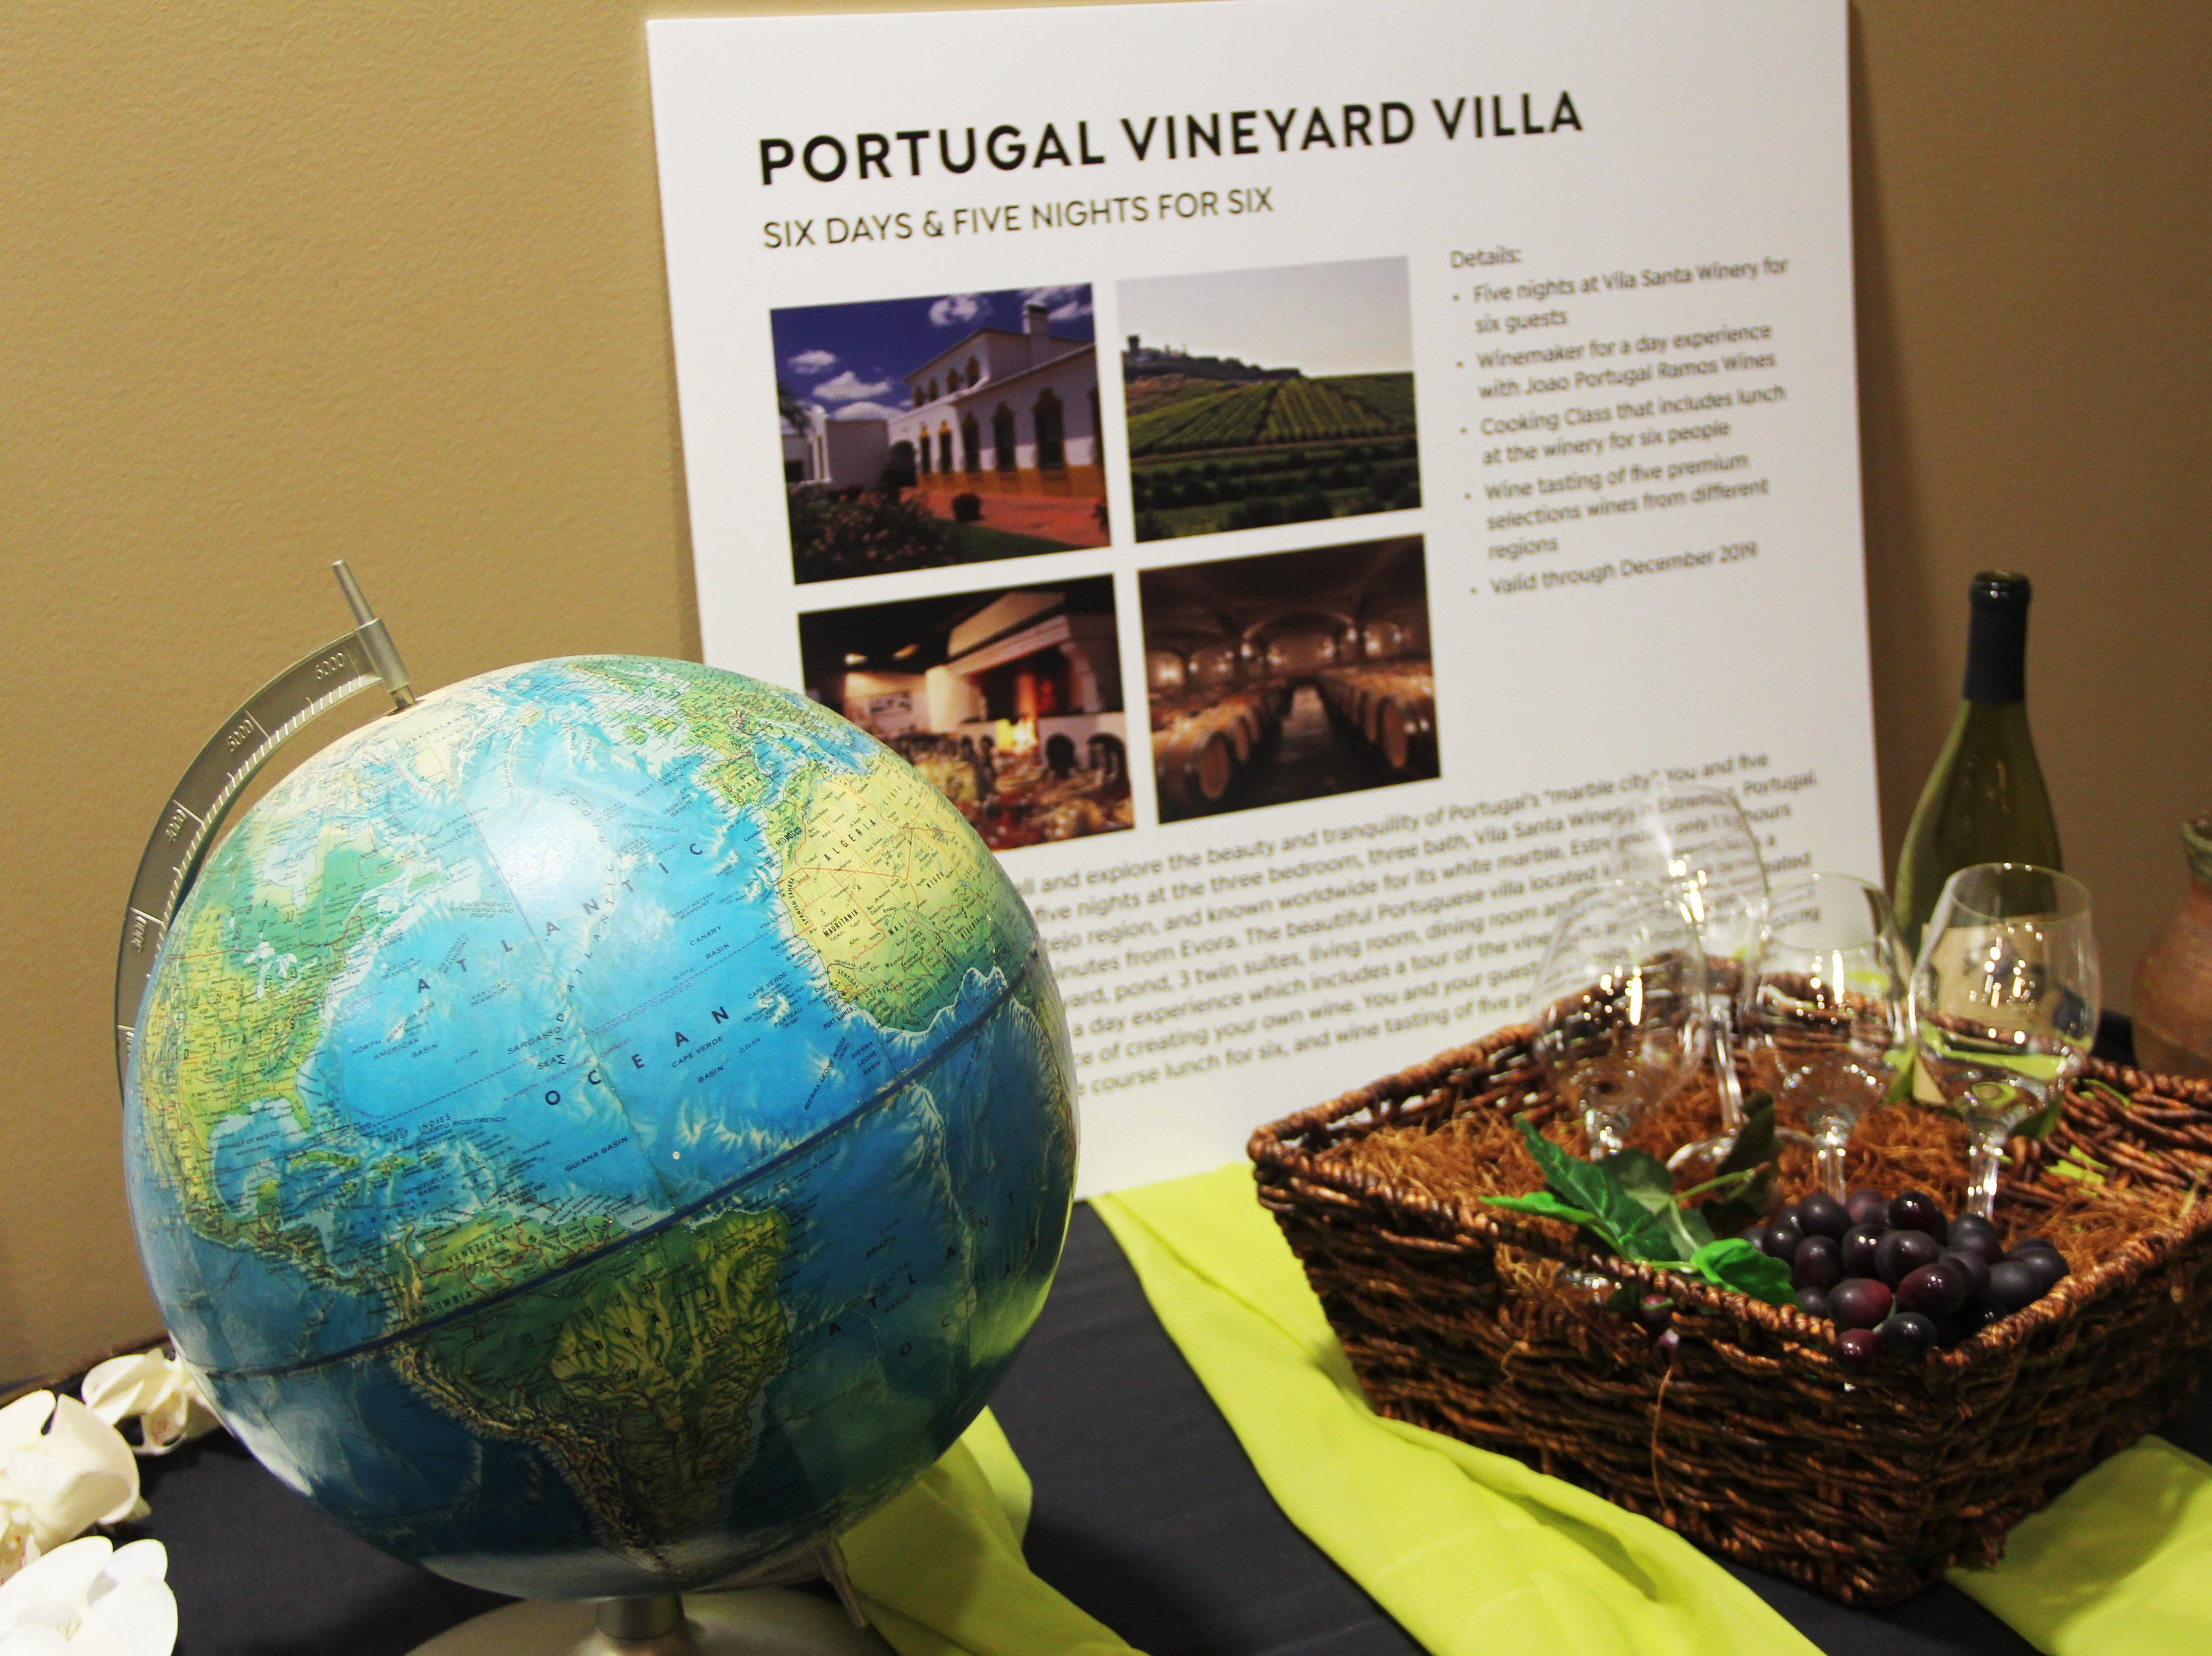 A five night stay for six at Vila Santa winery in Estremoz, Portugal was featured in the live auction at the 20th Annual Clay Ball on Saturday, Feb. 23.